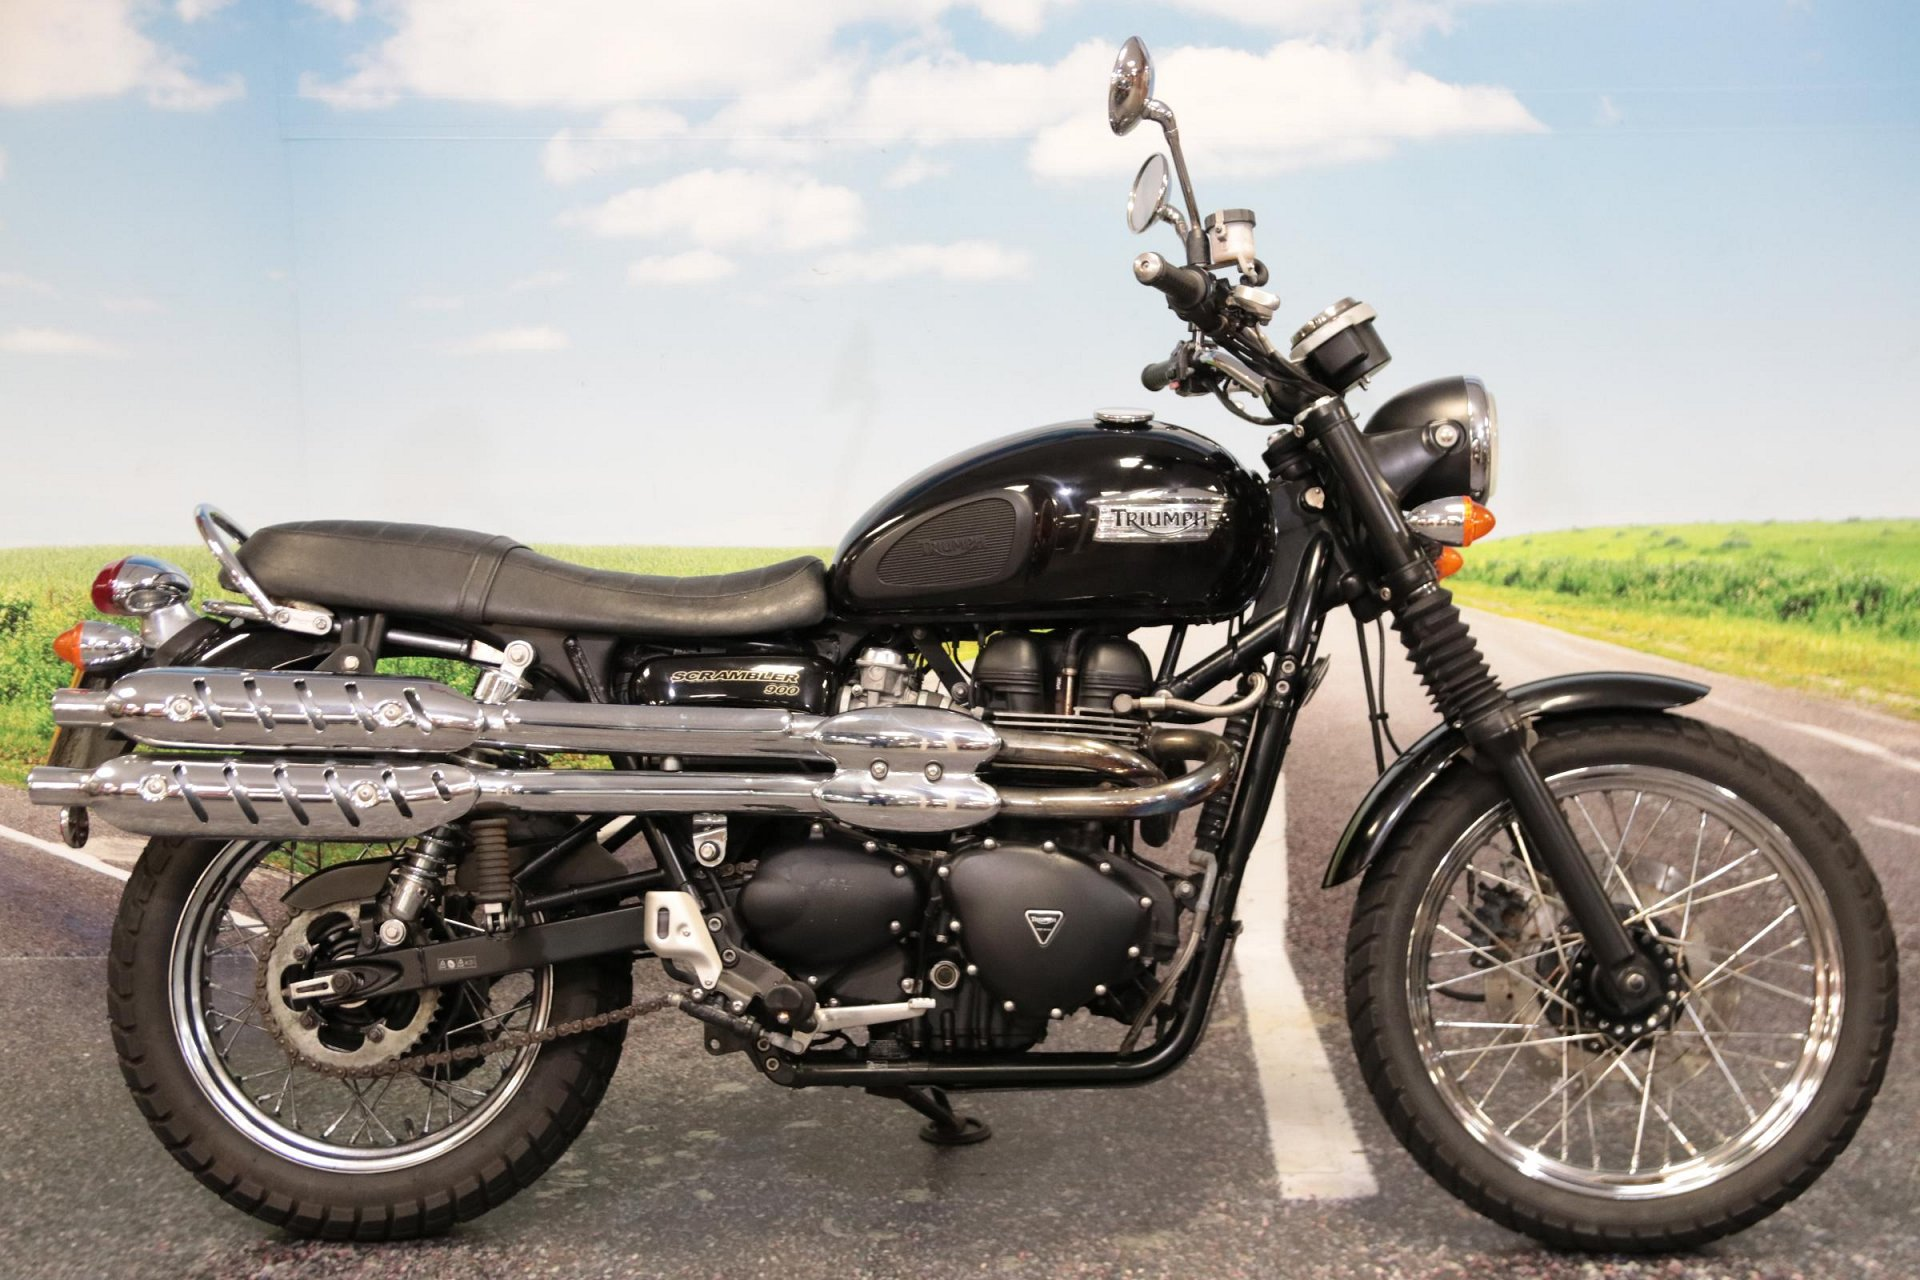 2010 Triumph Bonneville Scrambler for sale in South Wales